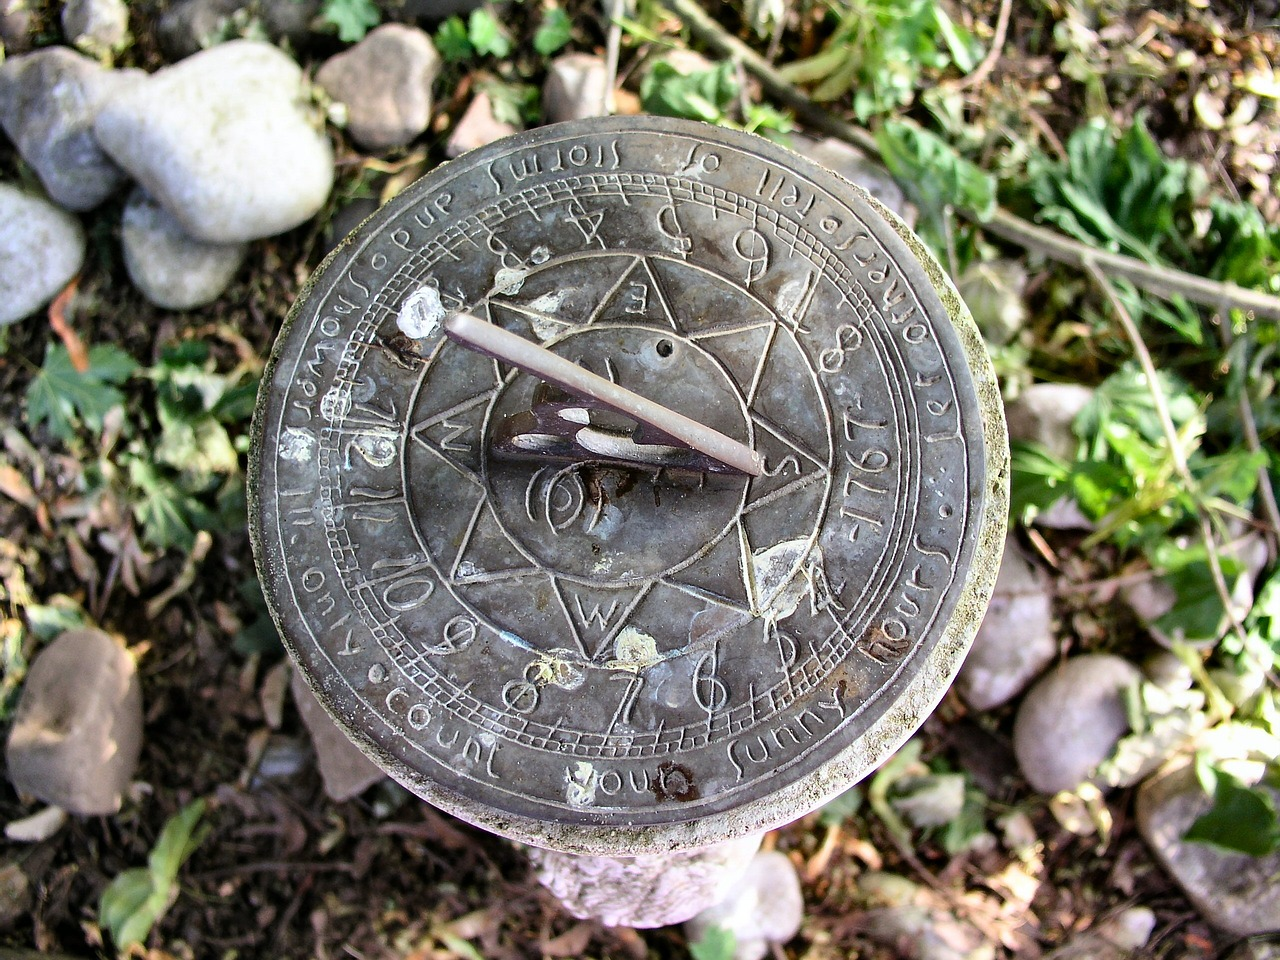 Before Time Began: Latin Quotes on Ancient Sundials